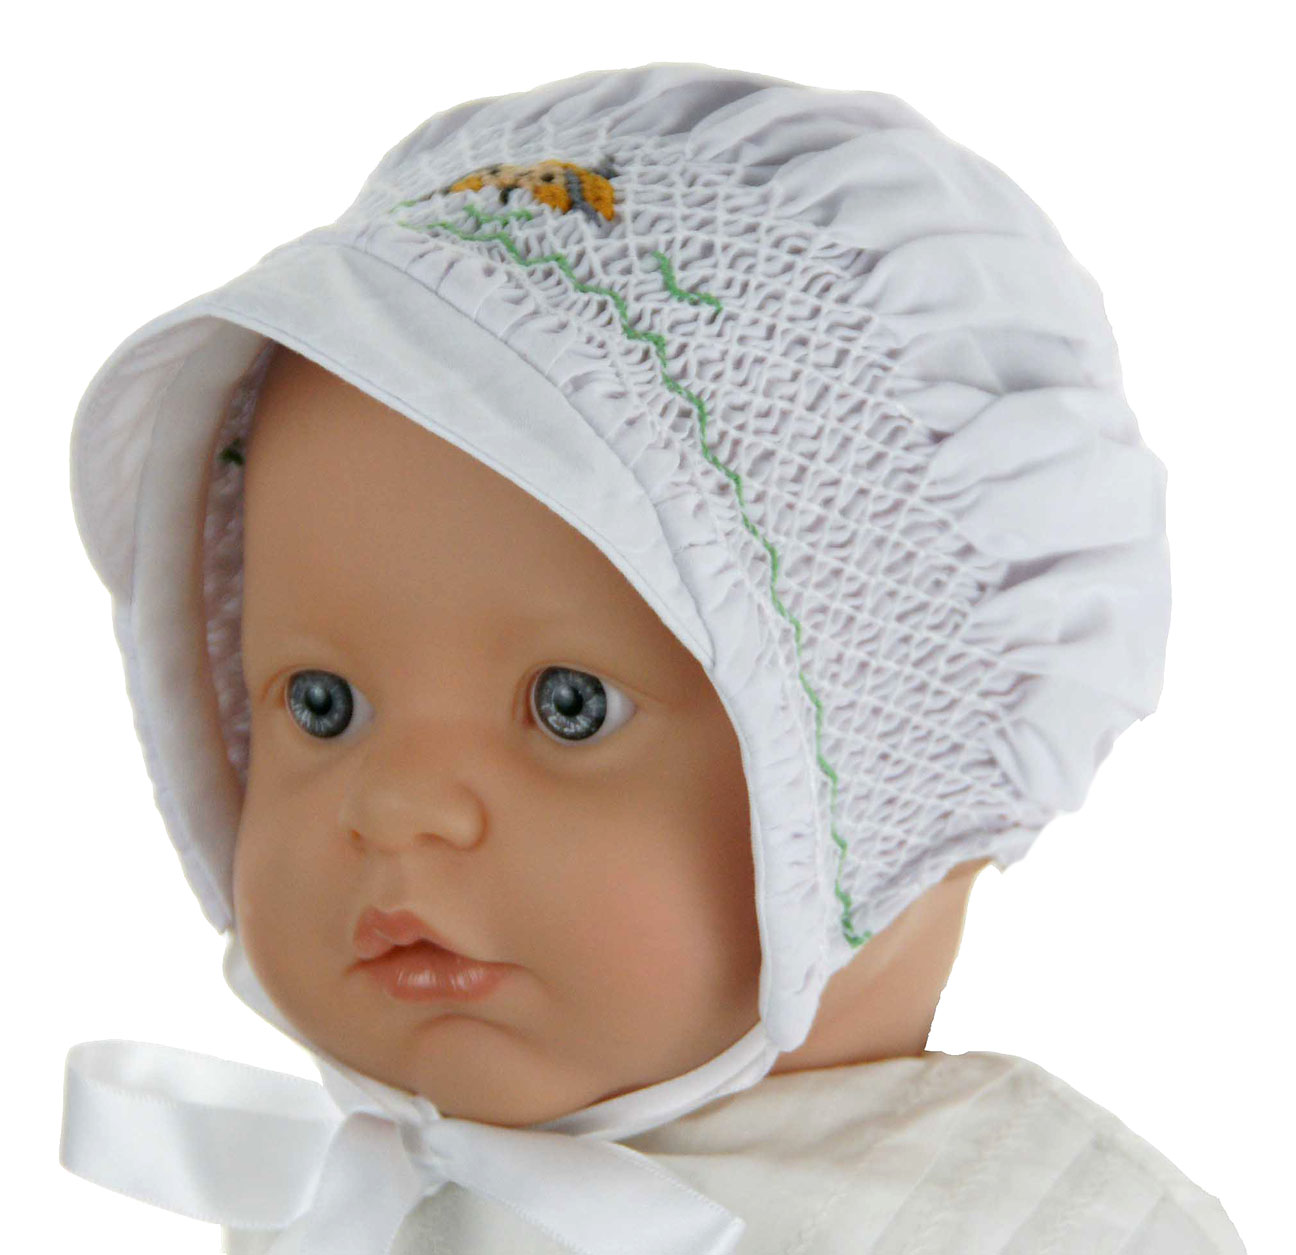 Find great deals on eBay for baby bonnet hat. Shop with confidence.